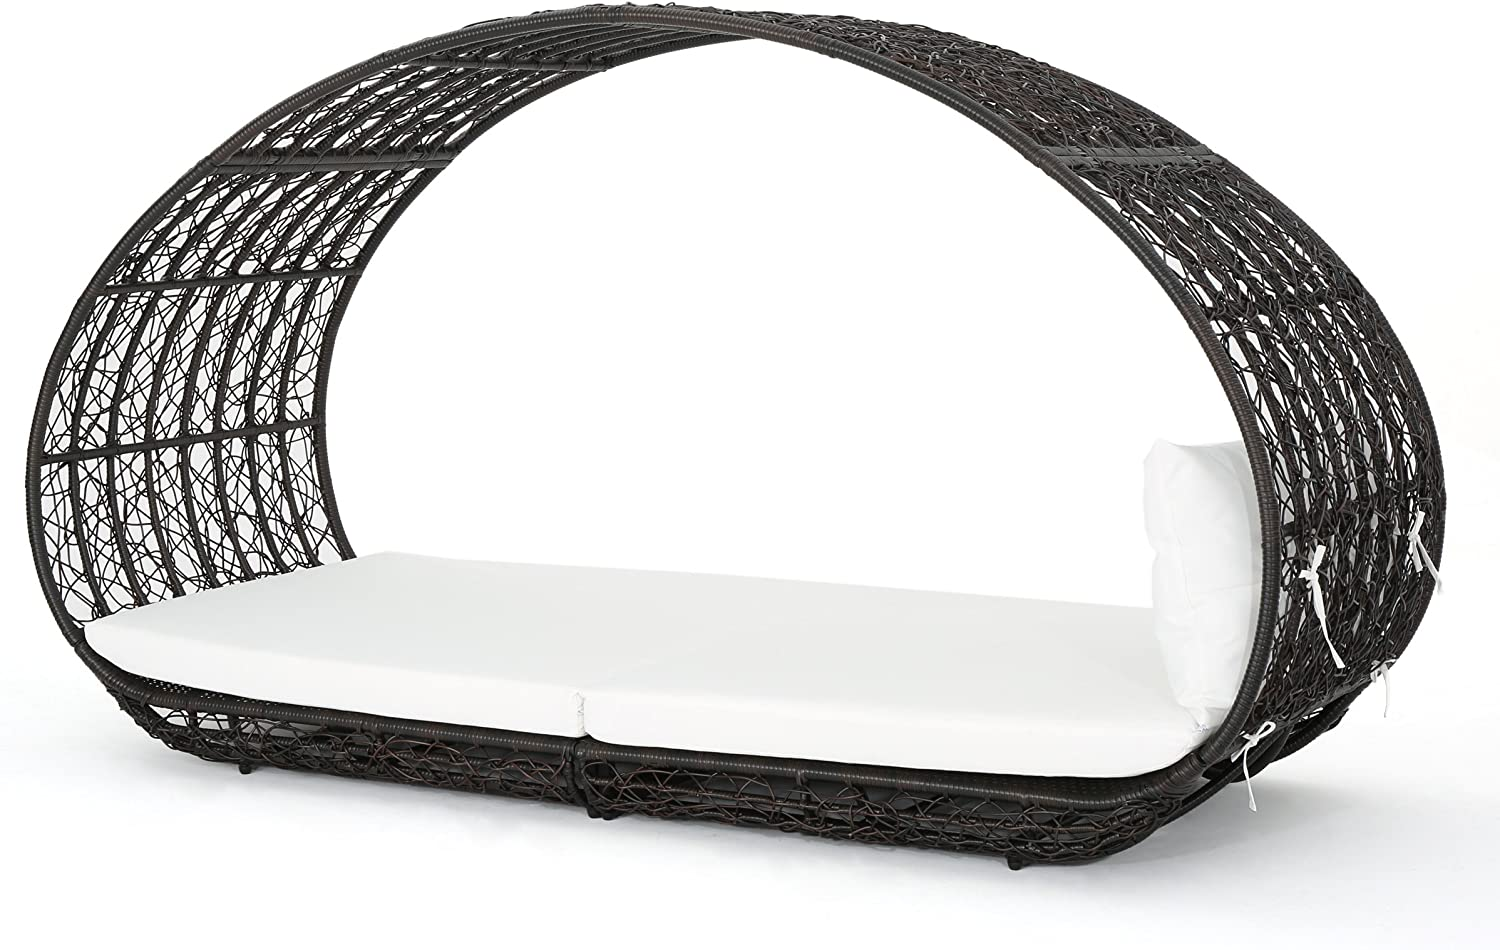 GDFStudio Bedford Outdoor Wicker Overhead Canopy Daybed w Water Resistant Cushion Multibrown White